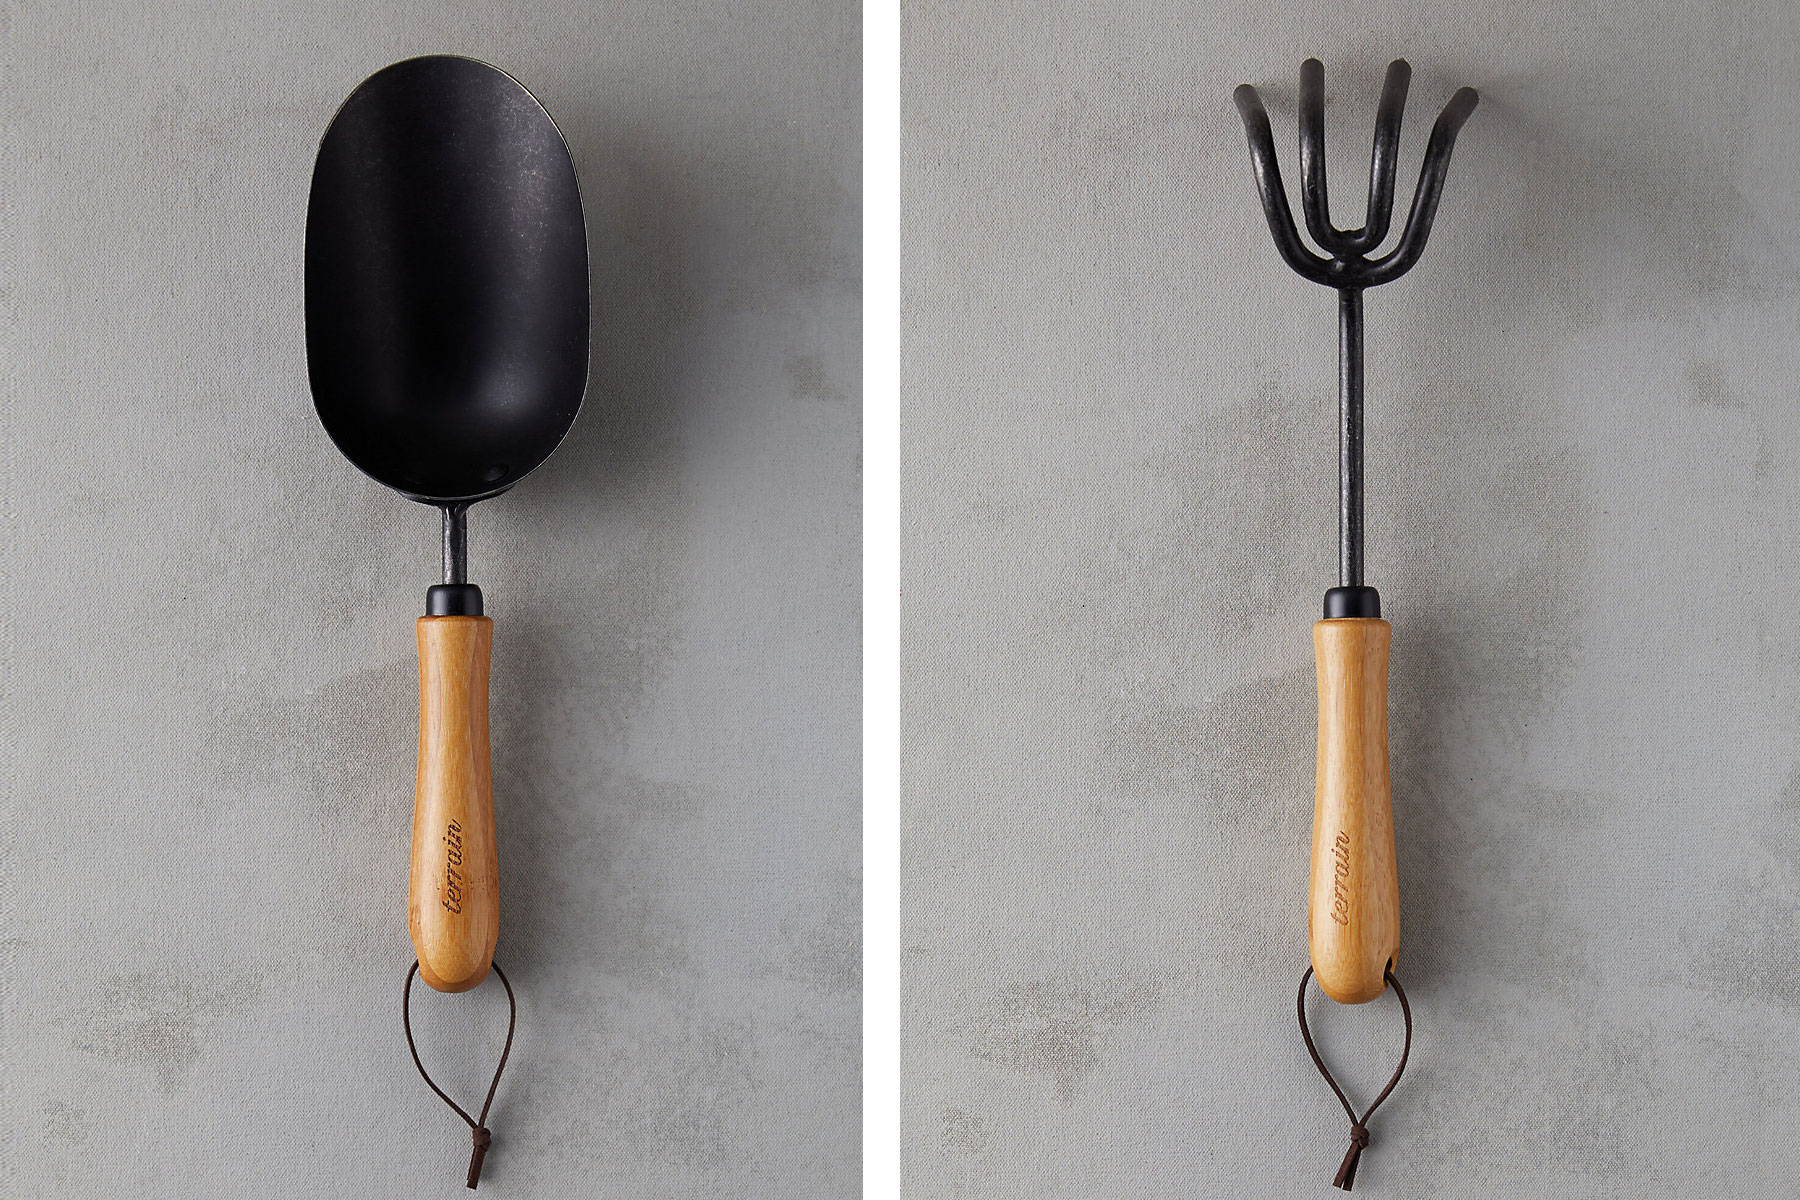 Small gardening shovel and tool